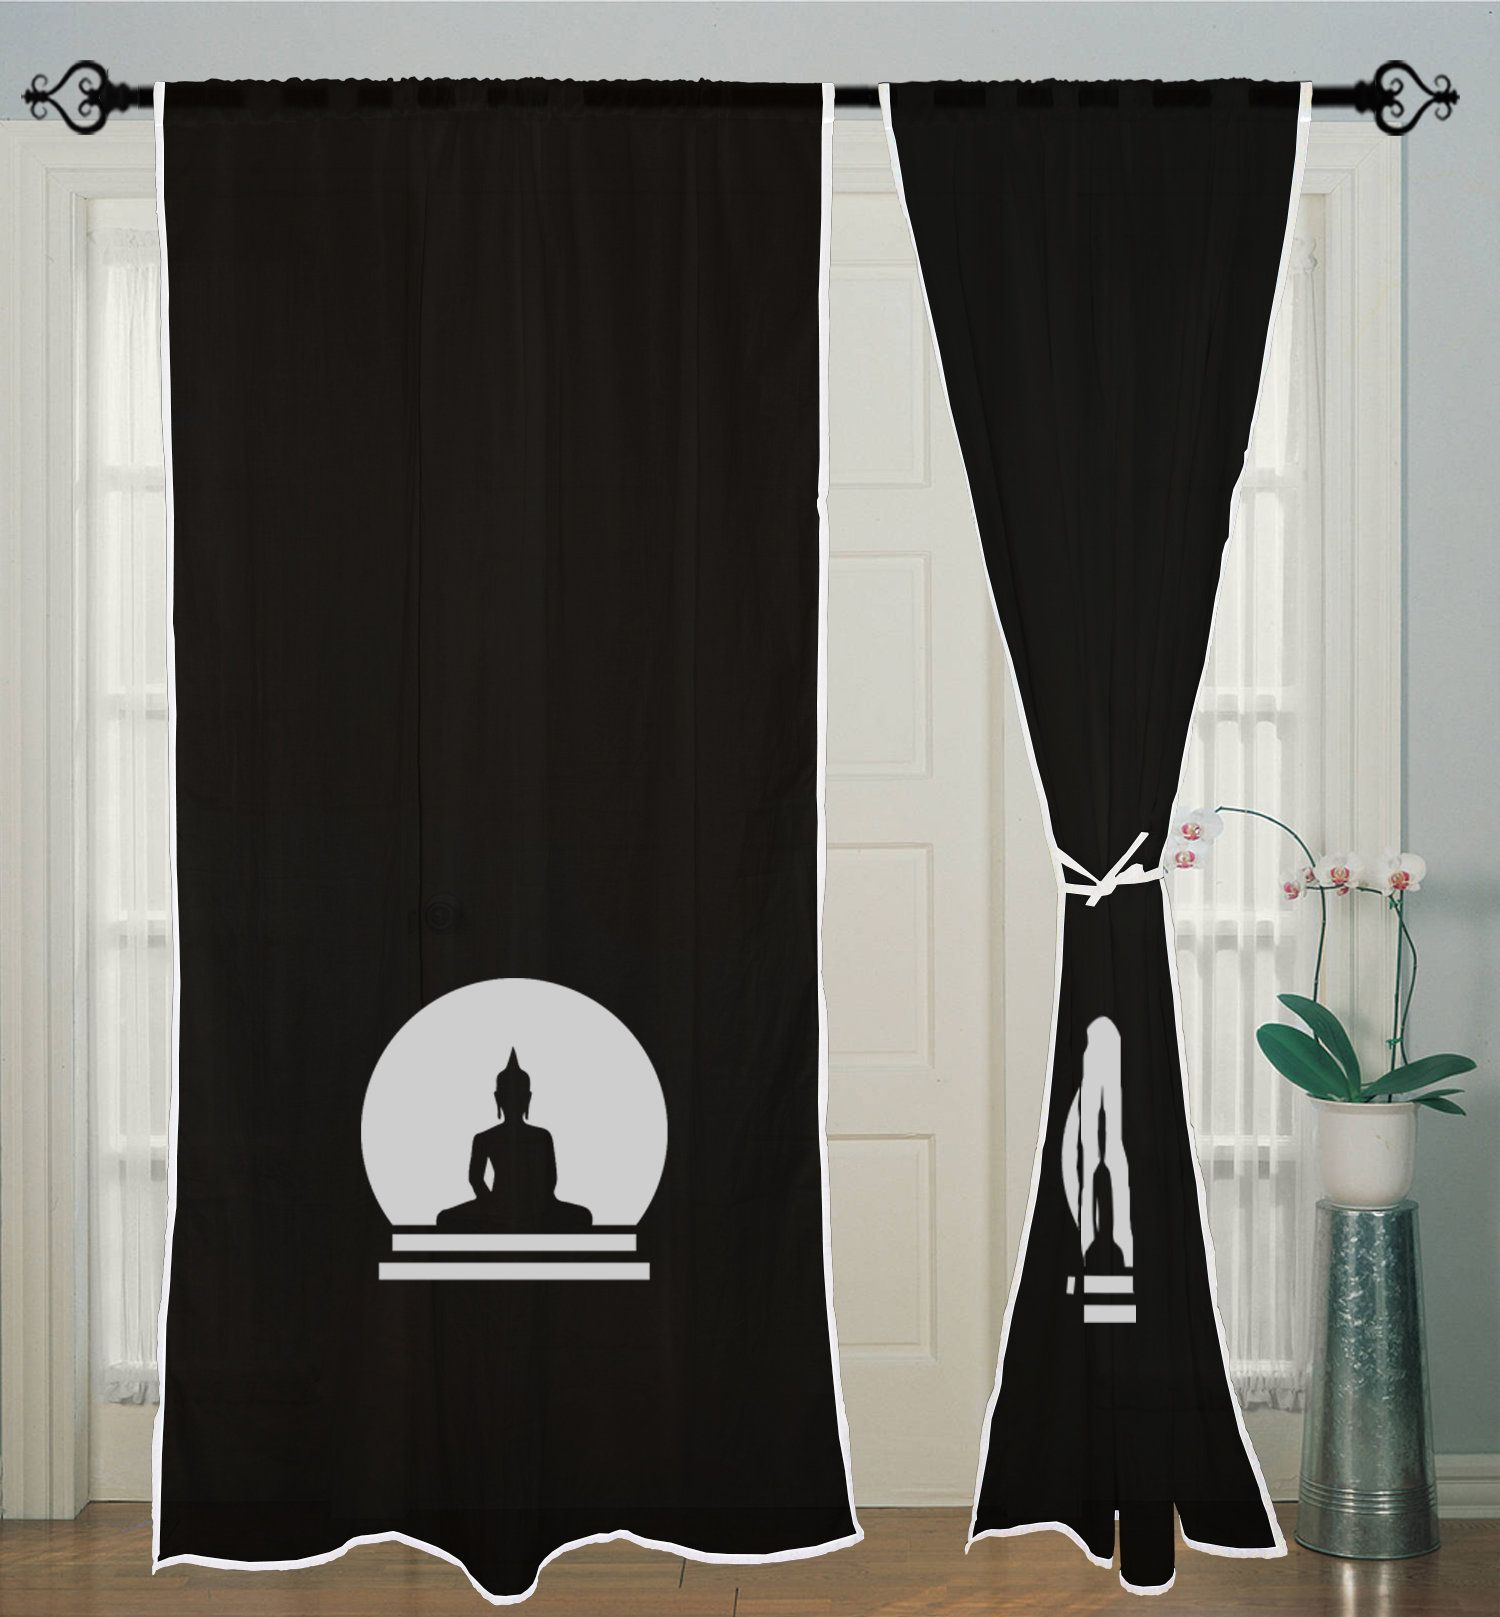 Buddha Curtain Black Curtains Window Curtain 2 Curtain Panels Living Room By Jagirdarshop On Etsy Curtain Panels Living Room Black Curtains Blue Curtains